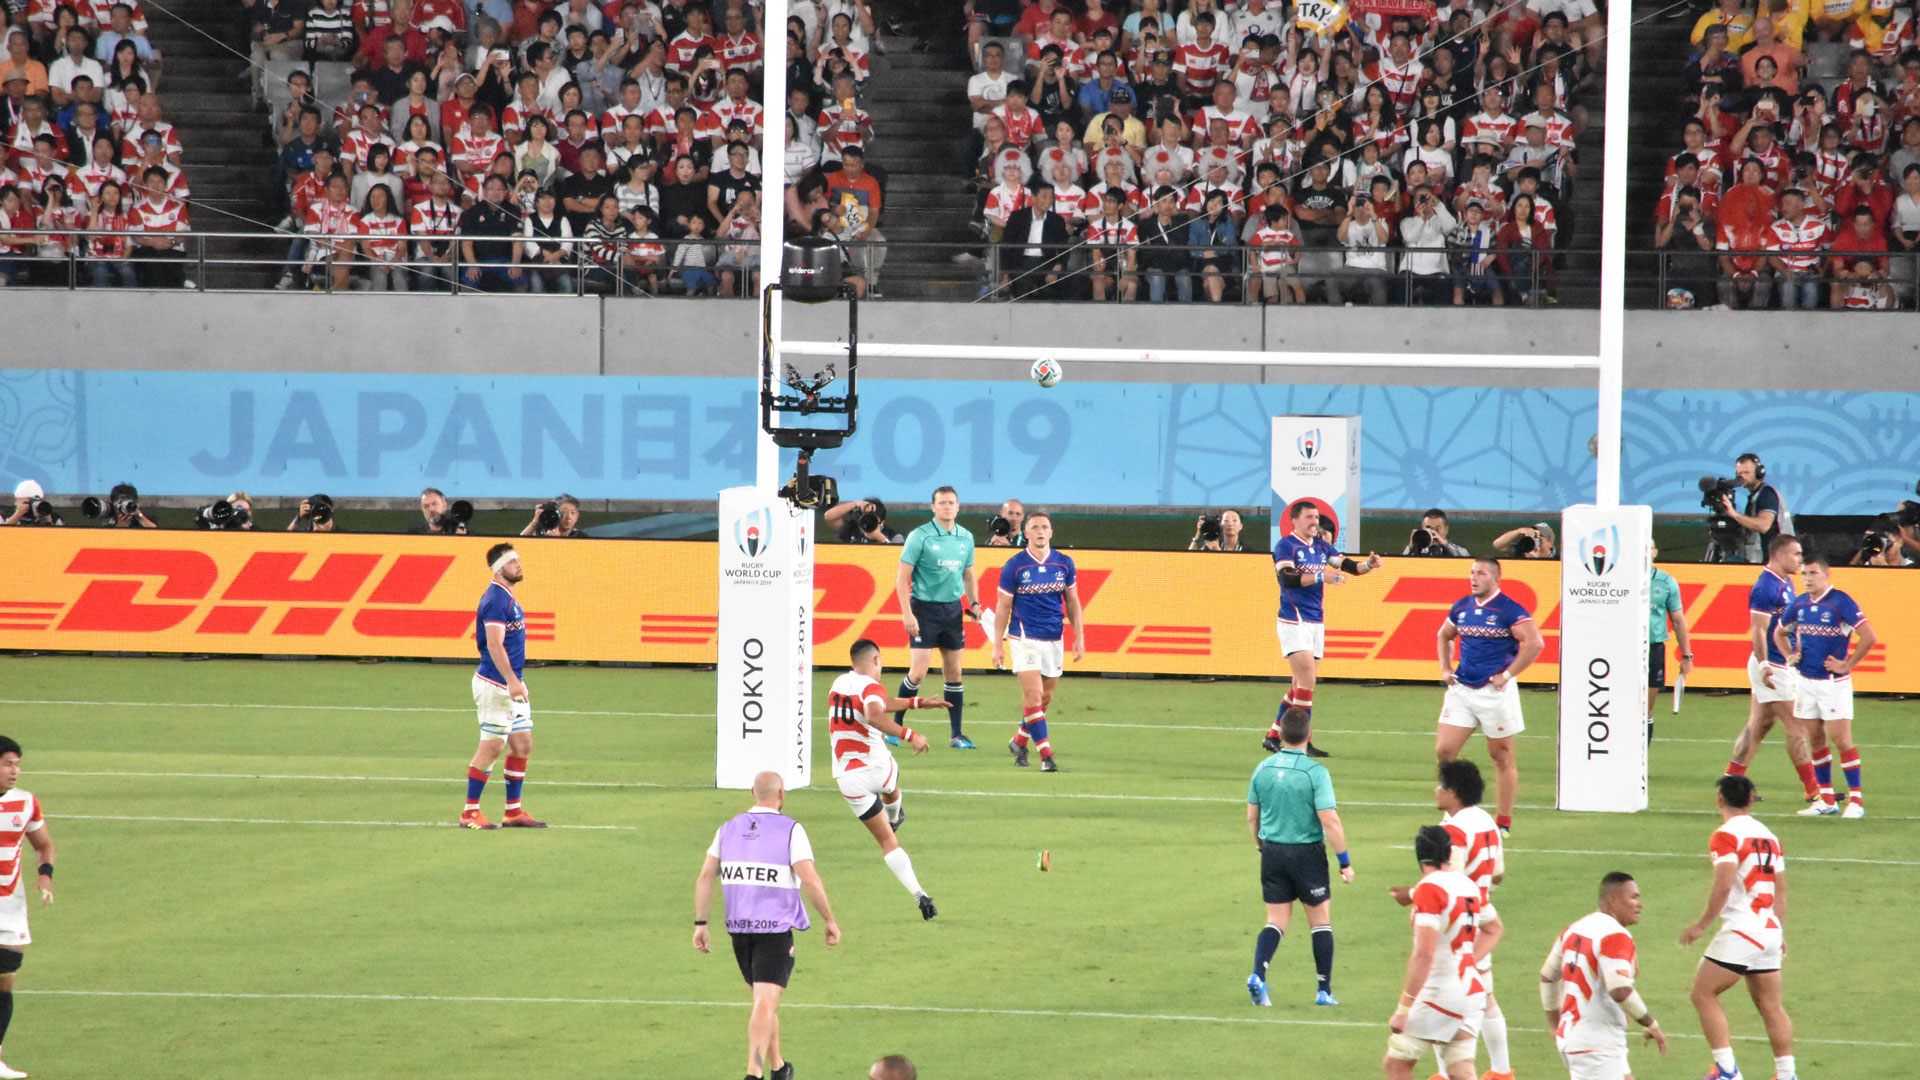 Rugby – A Very English Sport